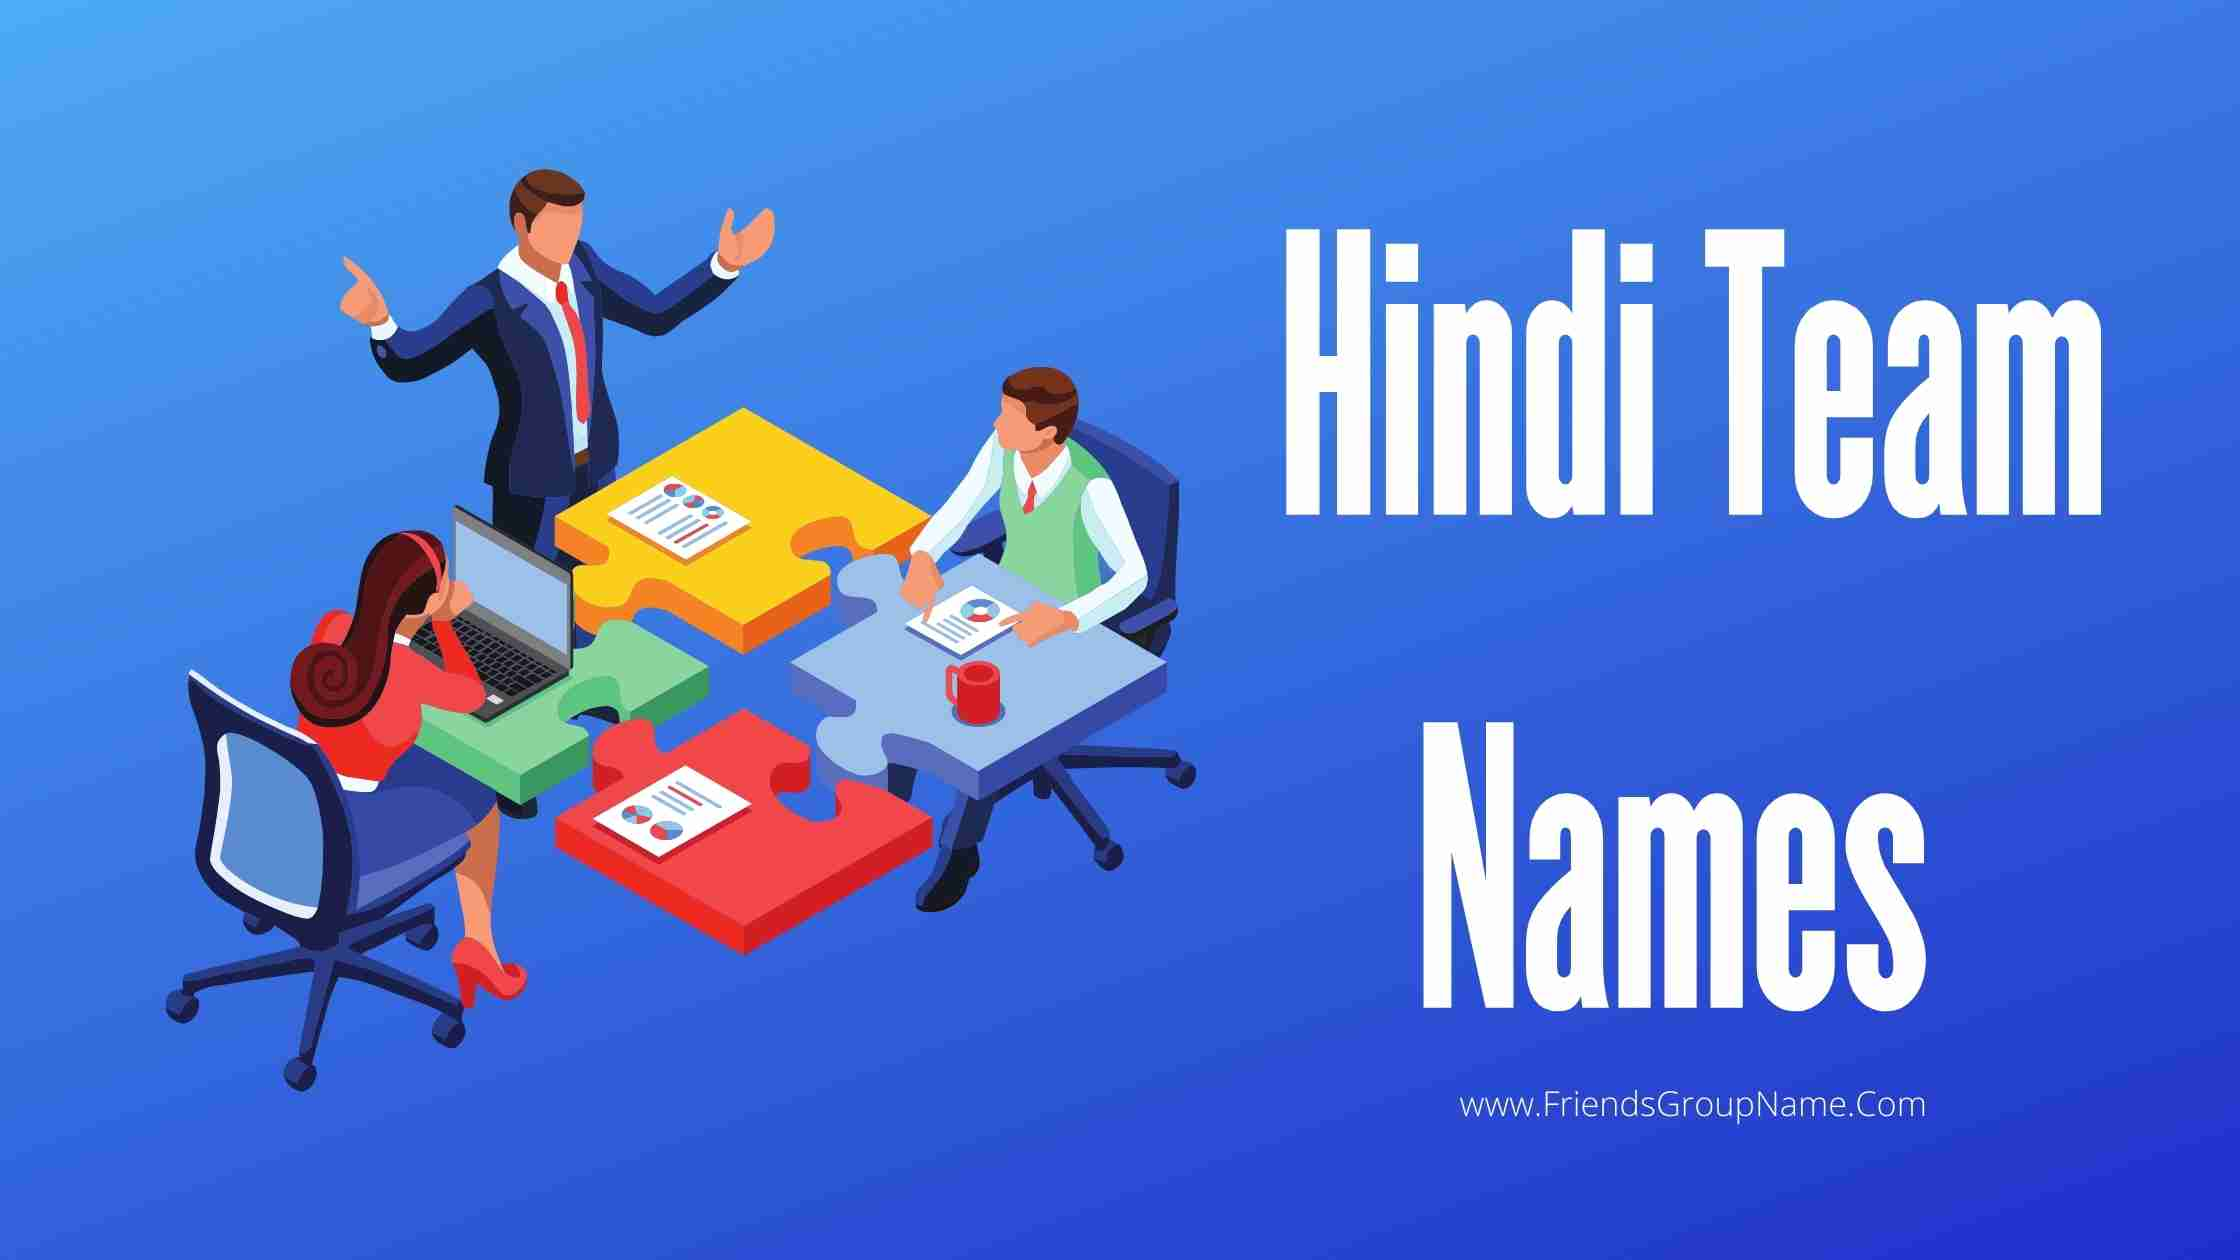 Hindi Team Names